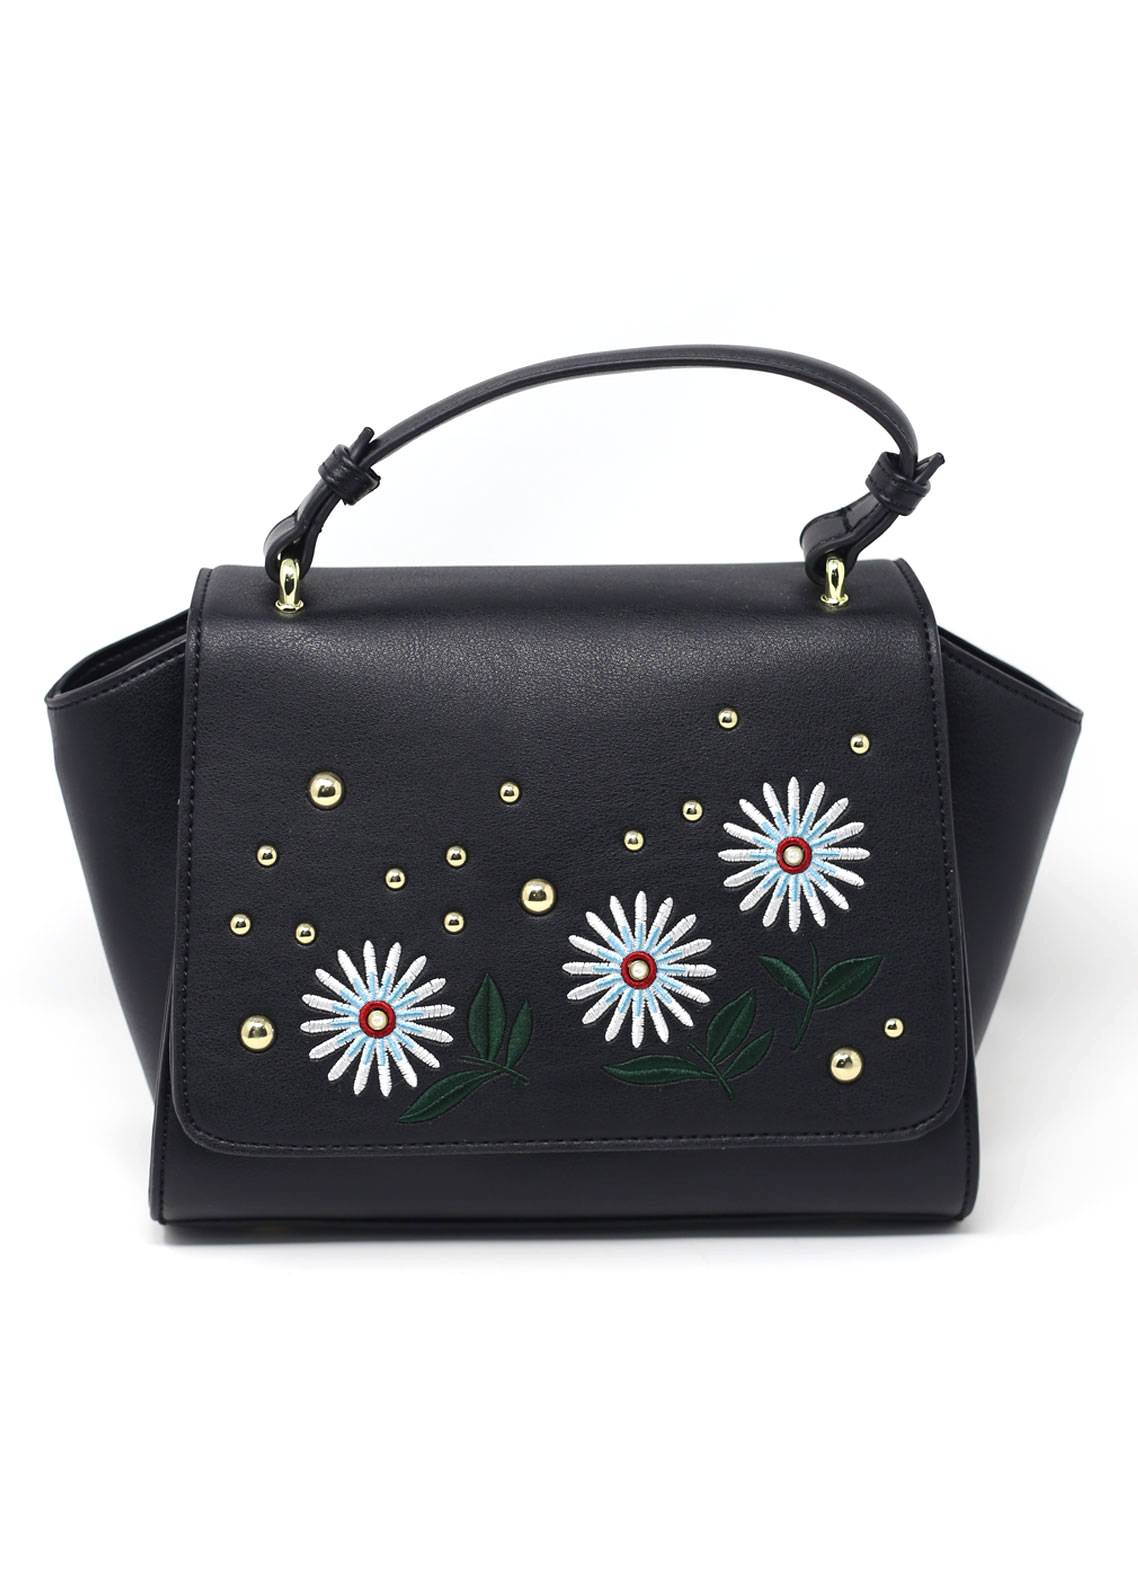 Susen PU Leather Satchels Bag for Women - Black with Flower Pattern